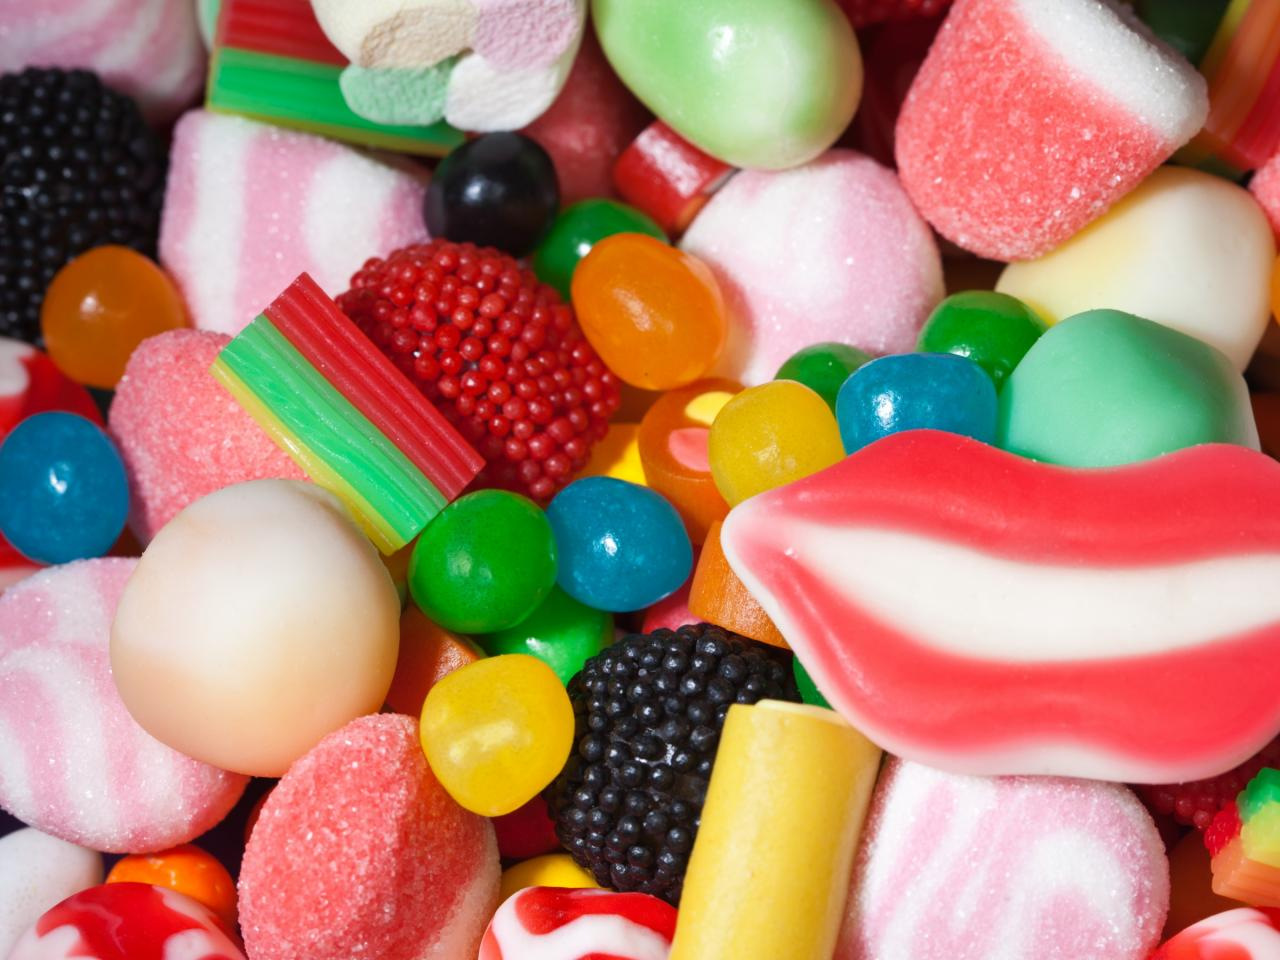 37 Cute Stuff Wallpapers Marshmallow And Colorful Candy